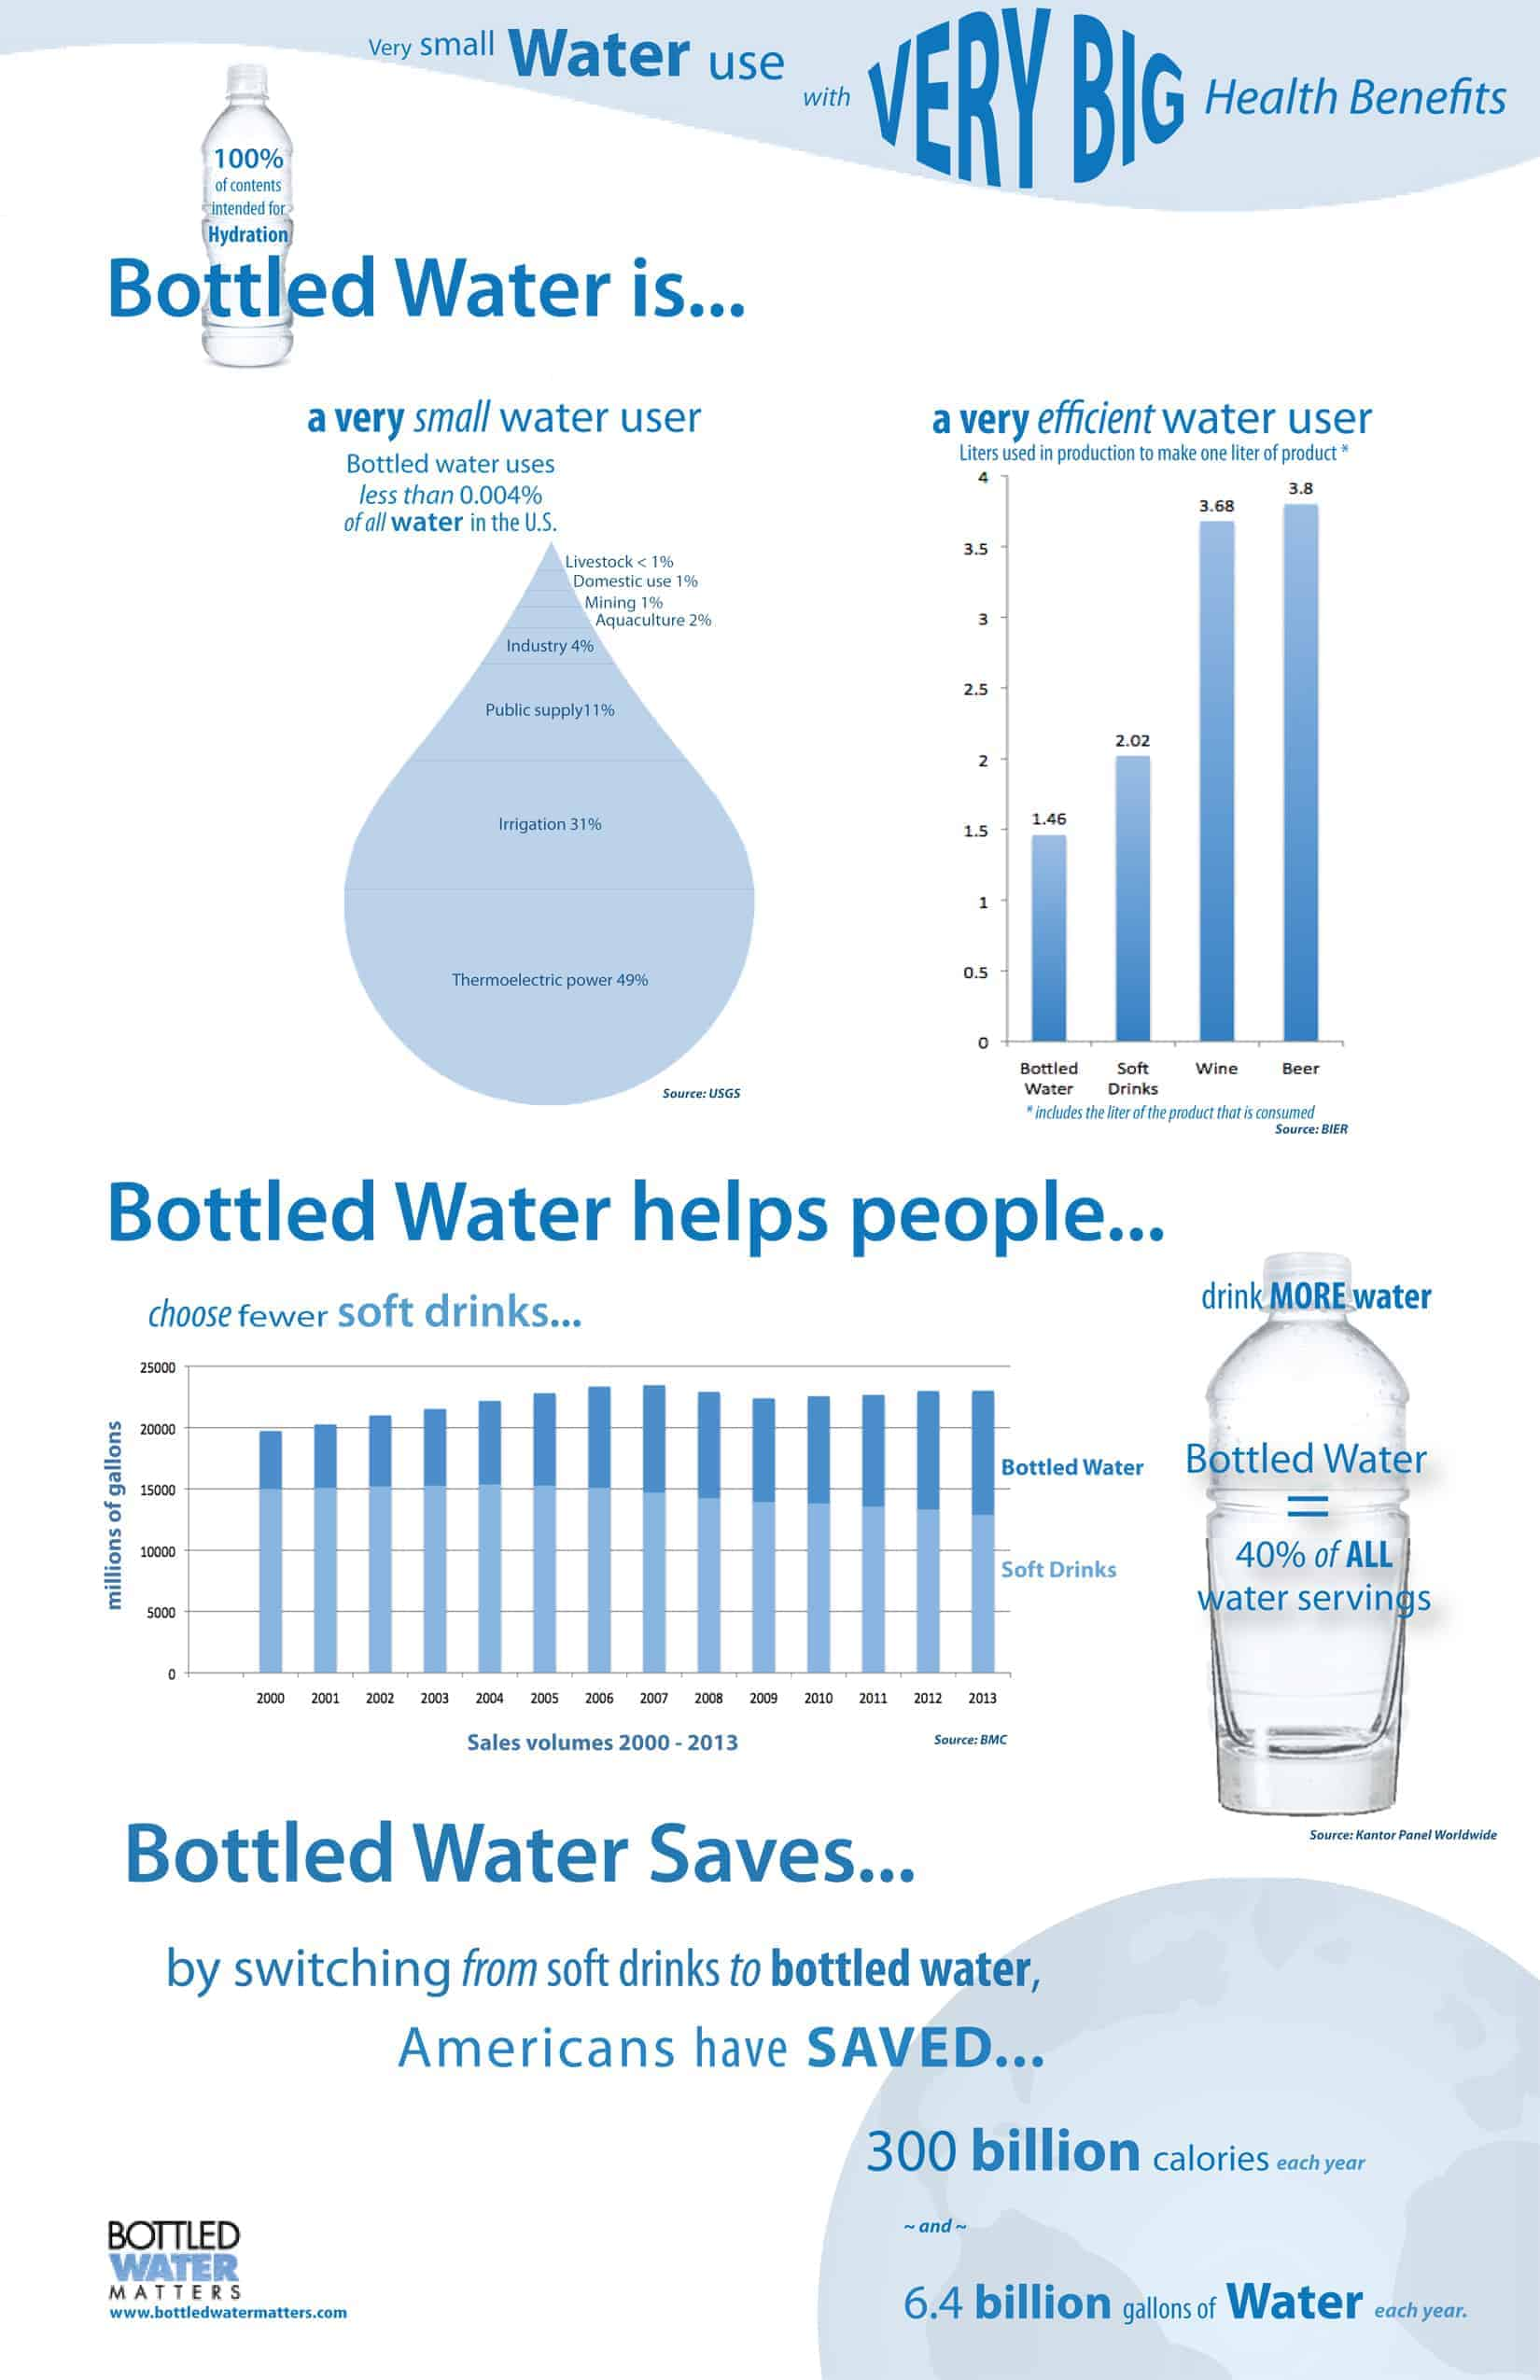 Here Is The Infographic On Bottle Water Which Saves People HOw Read This For Your Inspiration